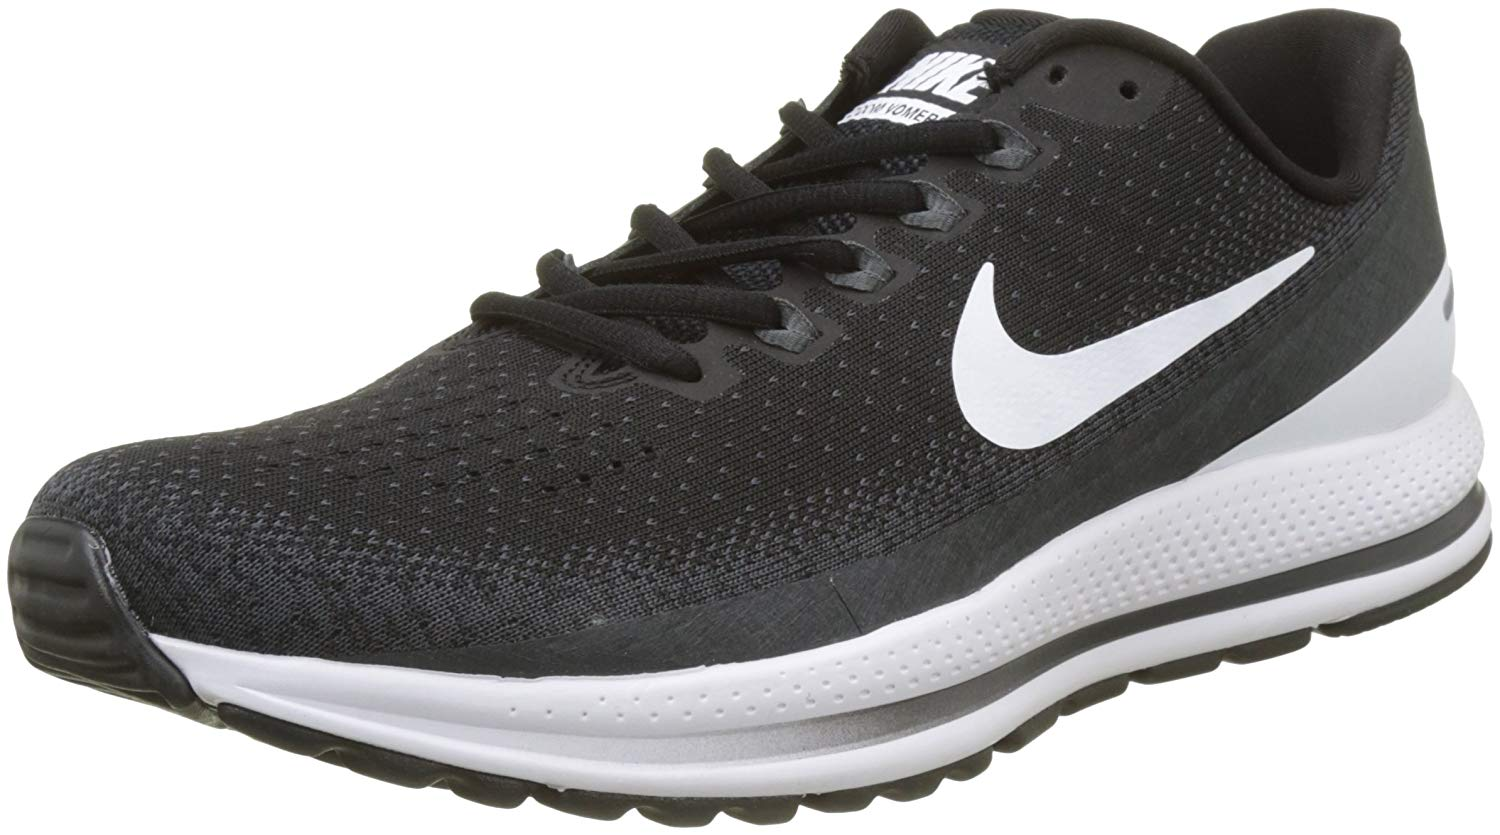 bdbc2c8390f5a Nike Men s Air Zoom Vomero 13 Running Shoes-Black White Antracite-7 ...